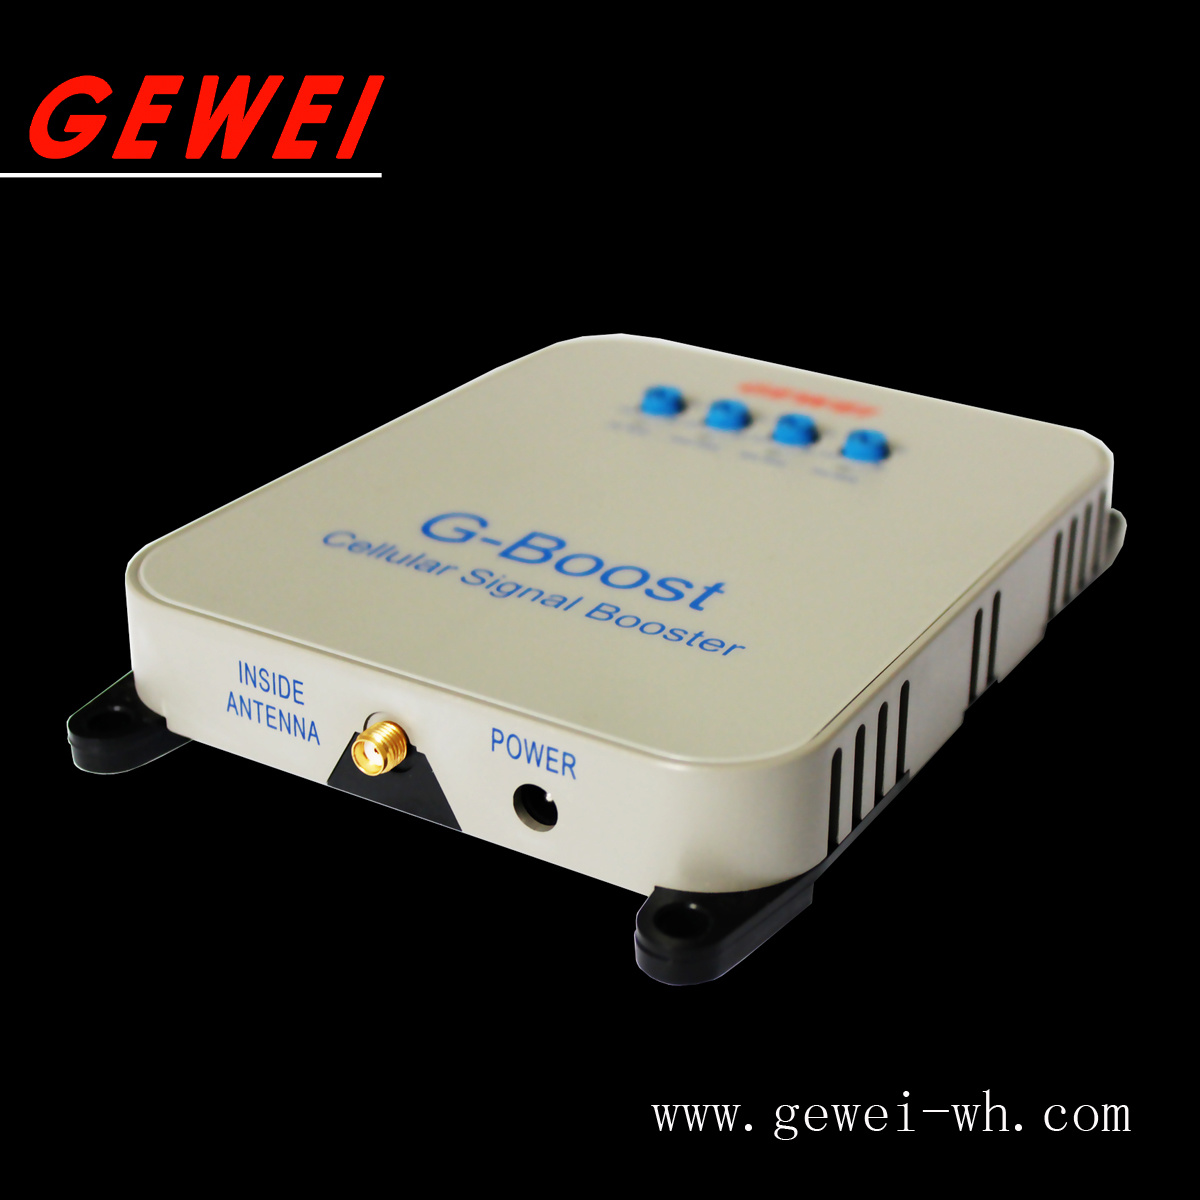 Gewei Wall-Plug Wireless Cellphone Signal Repeater Mobilephone Signal Booster for Home